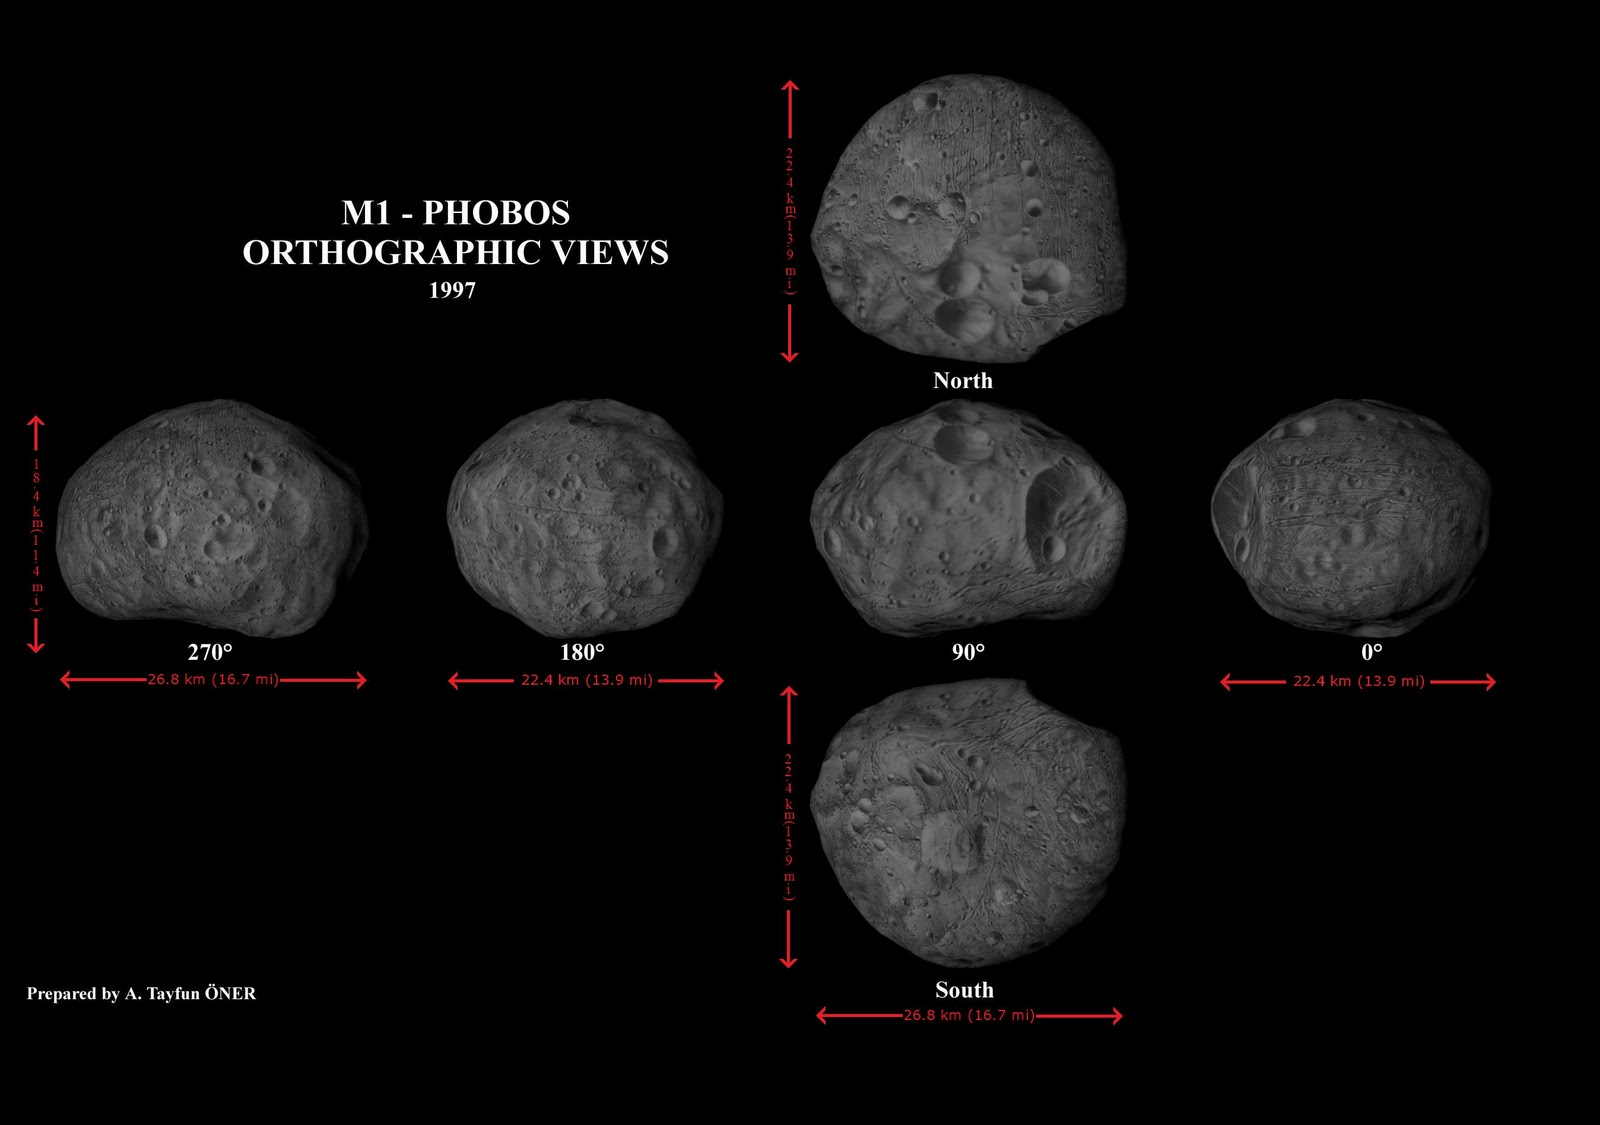 Mars Moons: Facts About Phobos